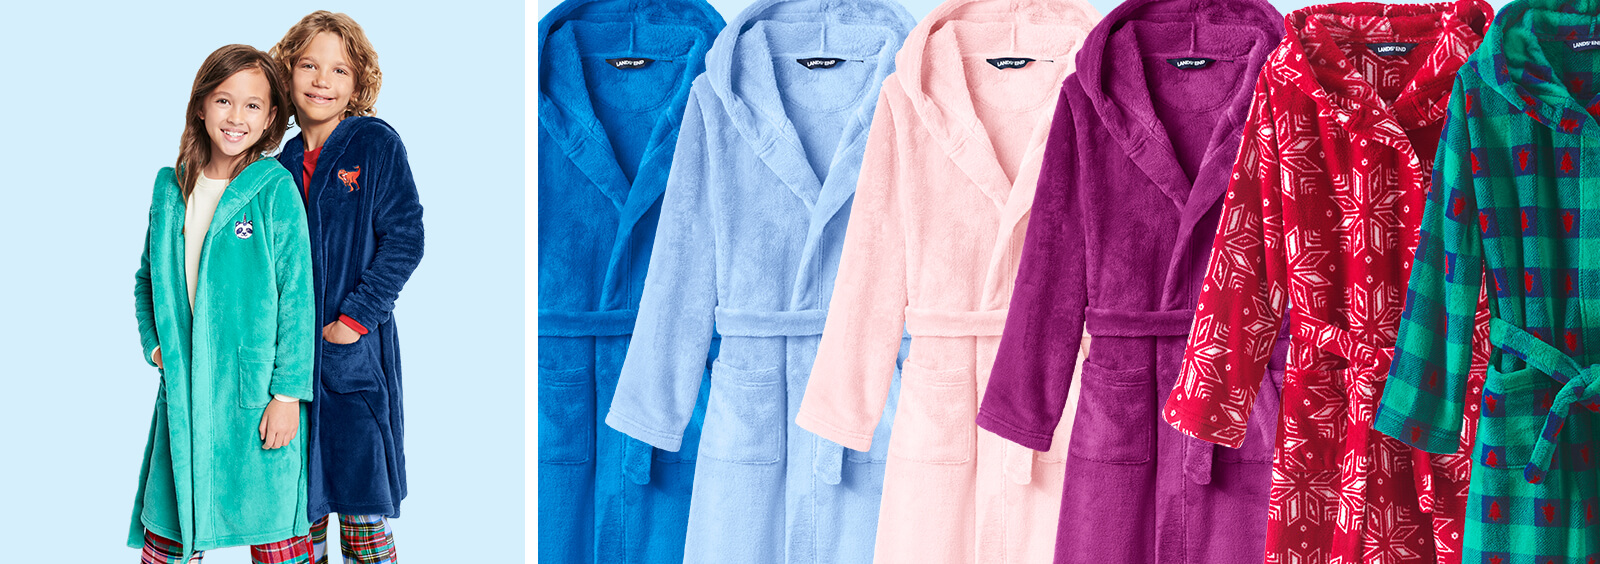 Flannel Robes Your Kids Will Love